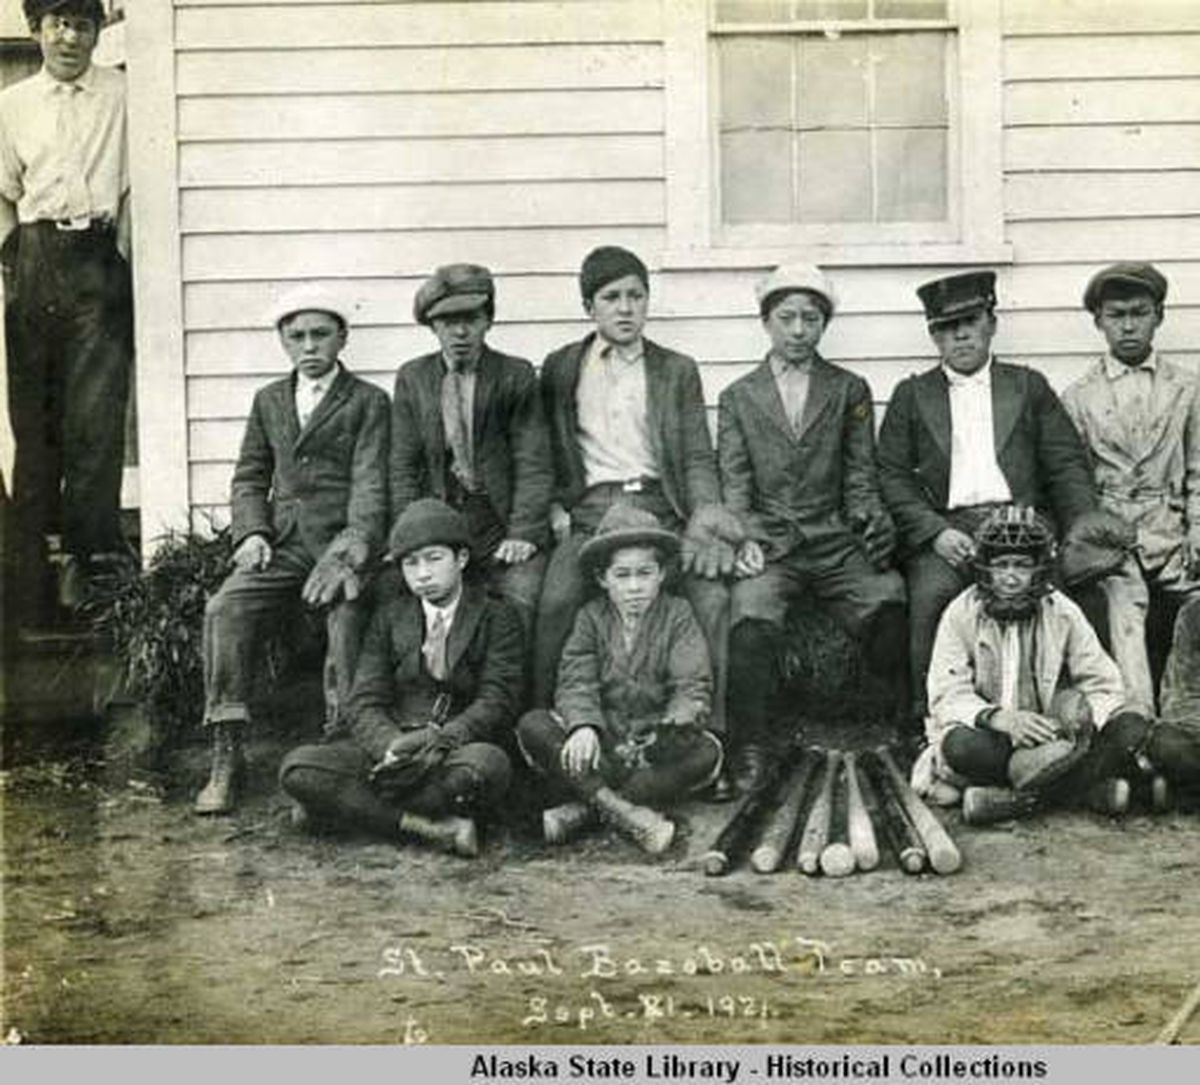 A 1921 photo of the St. Paul baseball team. (Alaska State Library photo)